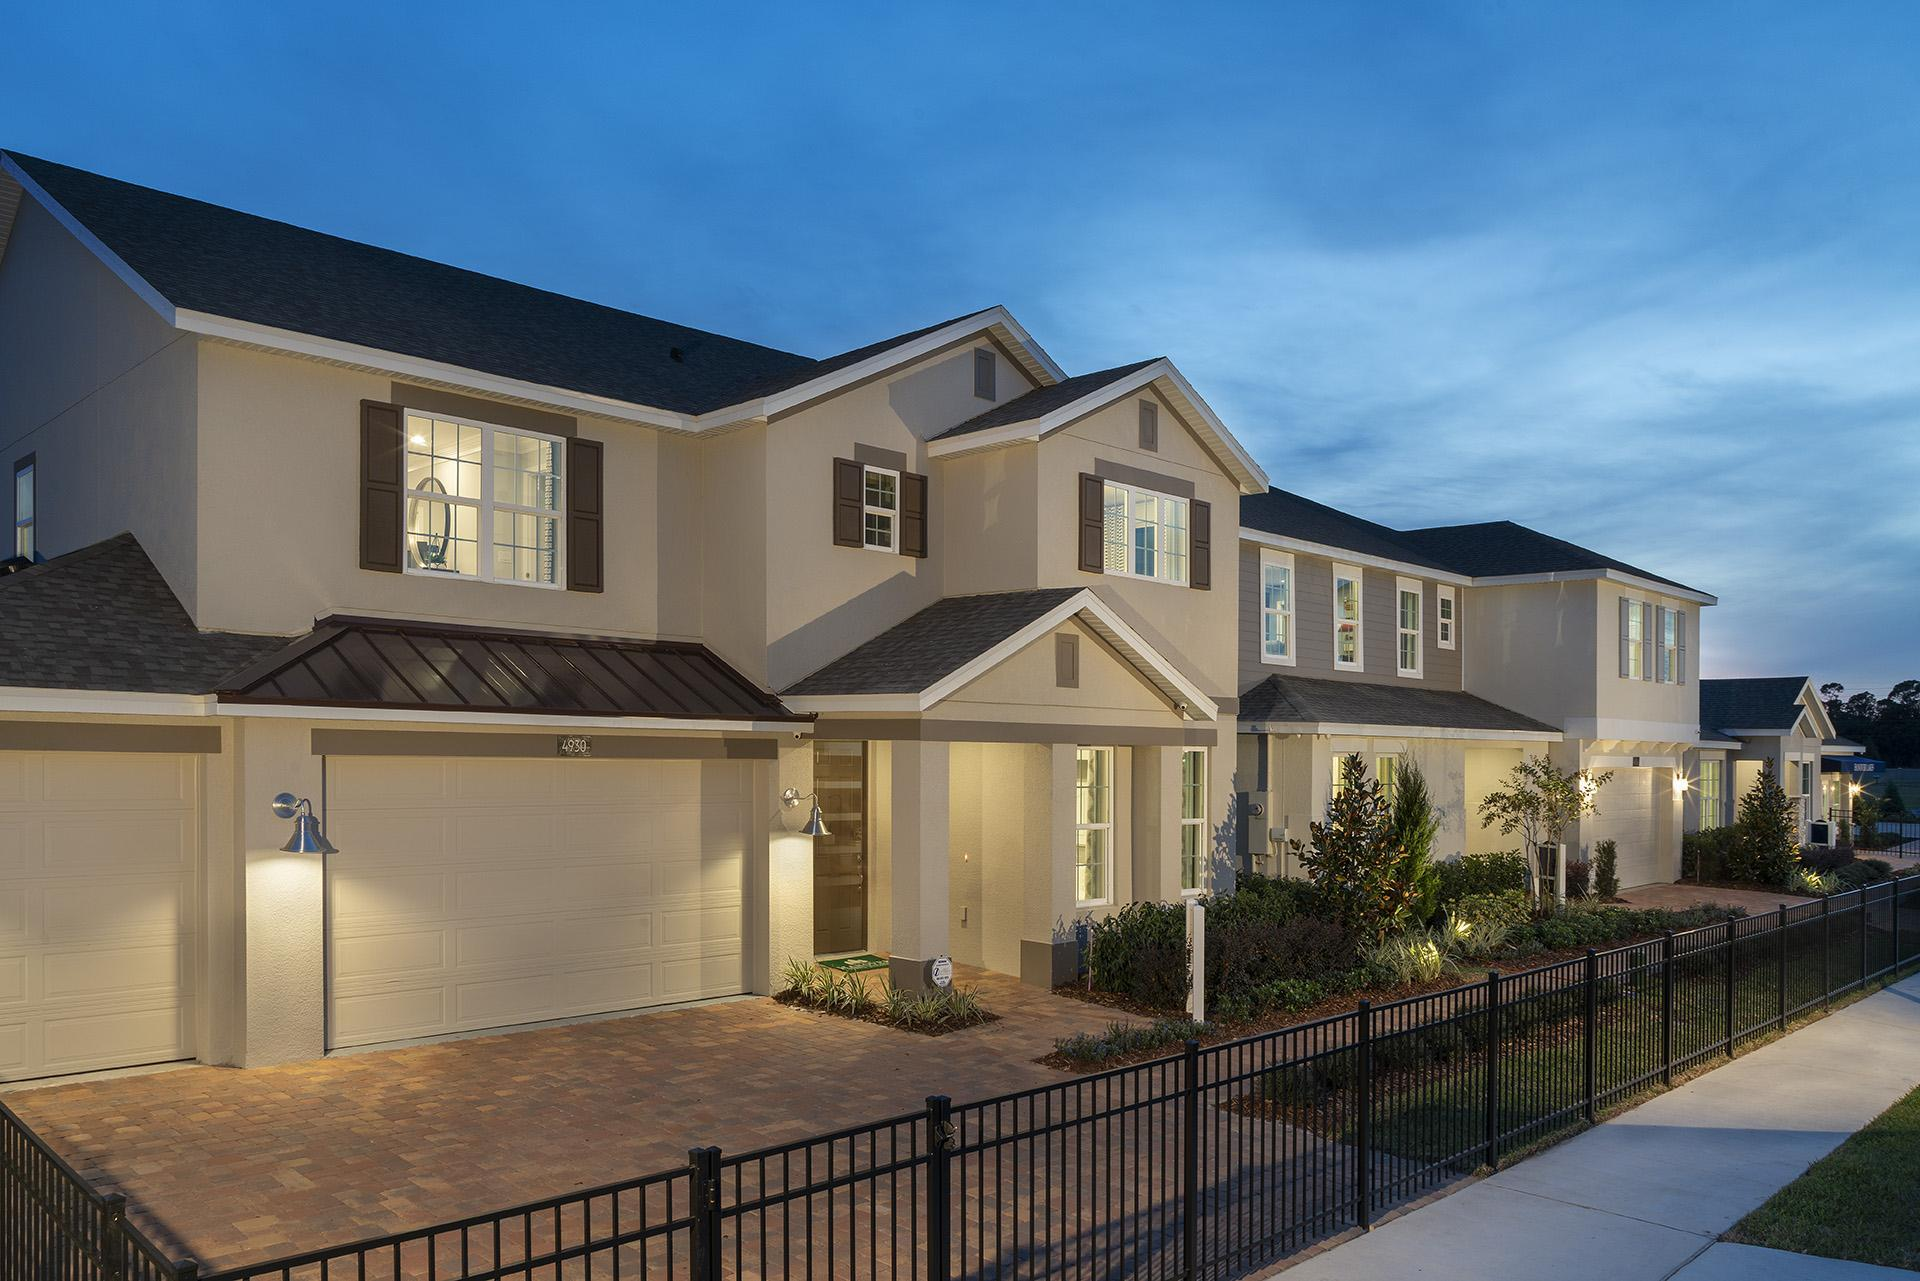 Hanover Lakes model homes:Hanover Lakes model homes